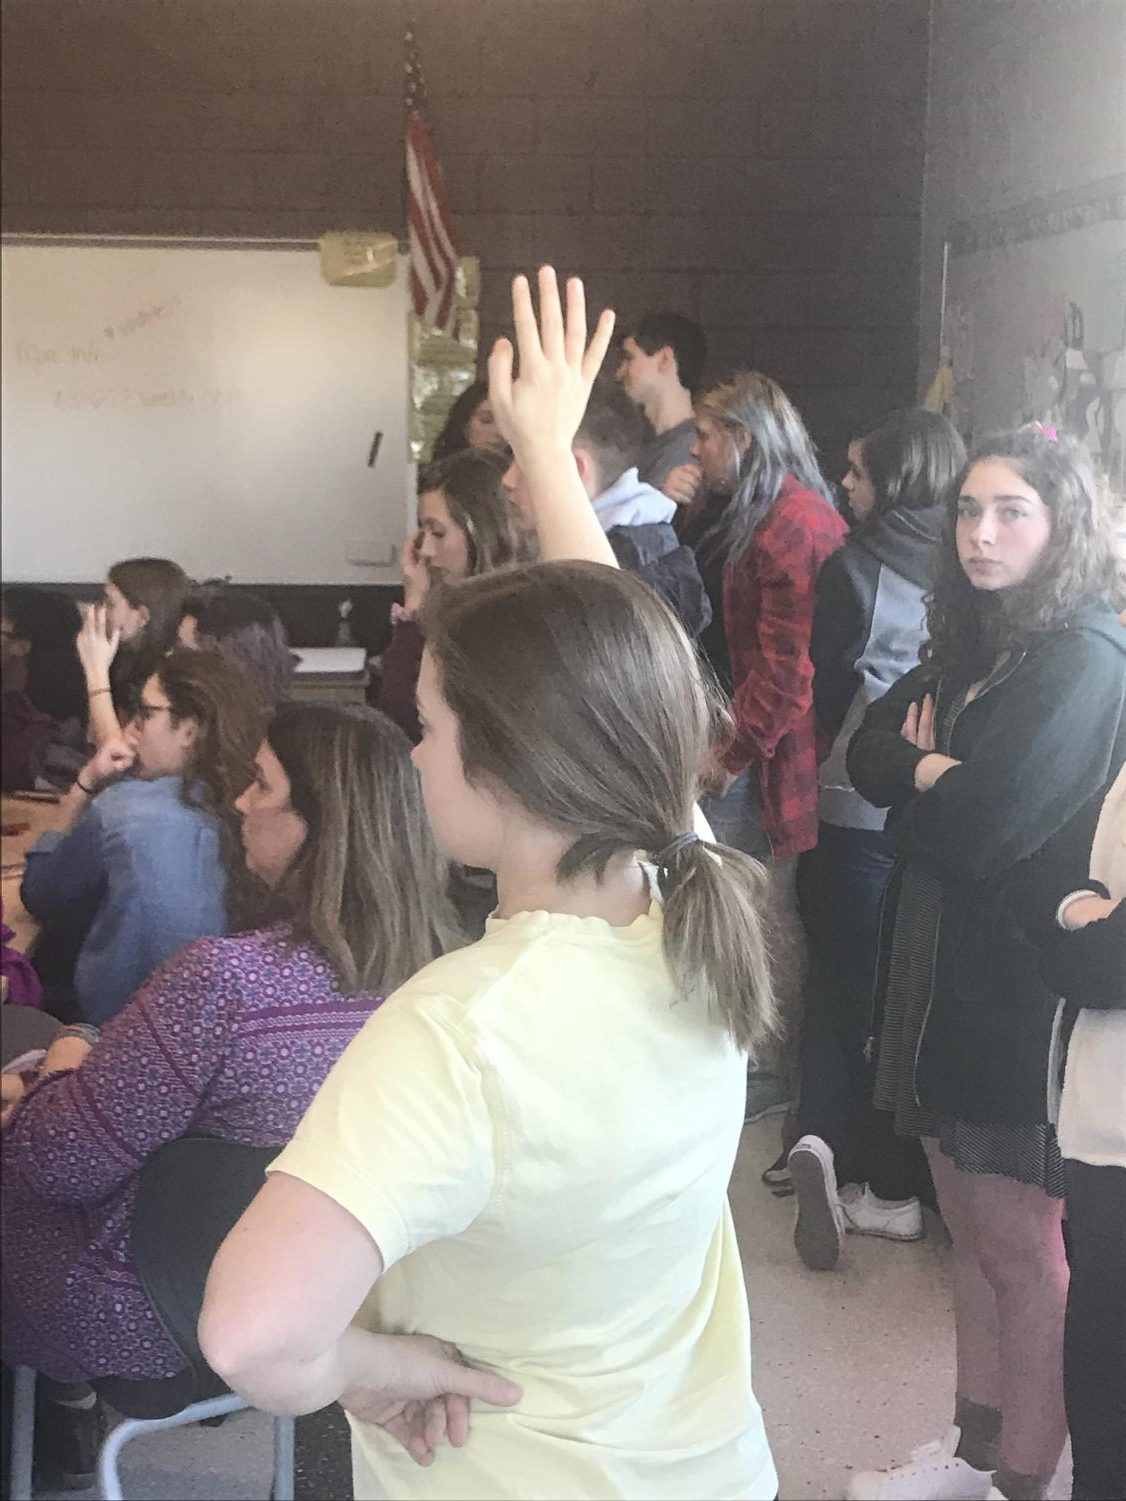 Students raise their hands to discuss the gathering being planned for March 14th. Photo by Joie Knouse